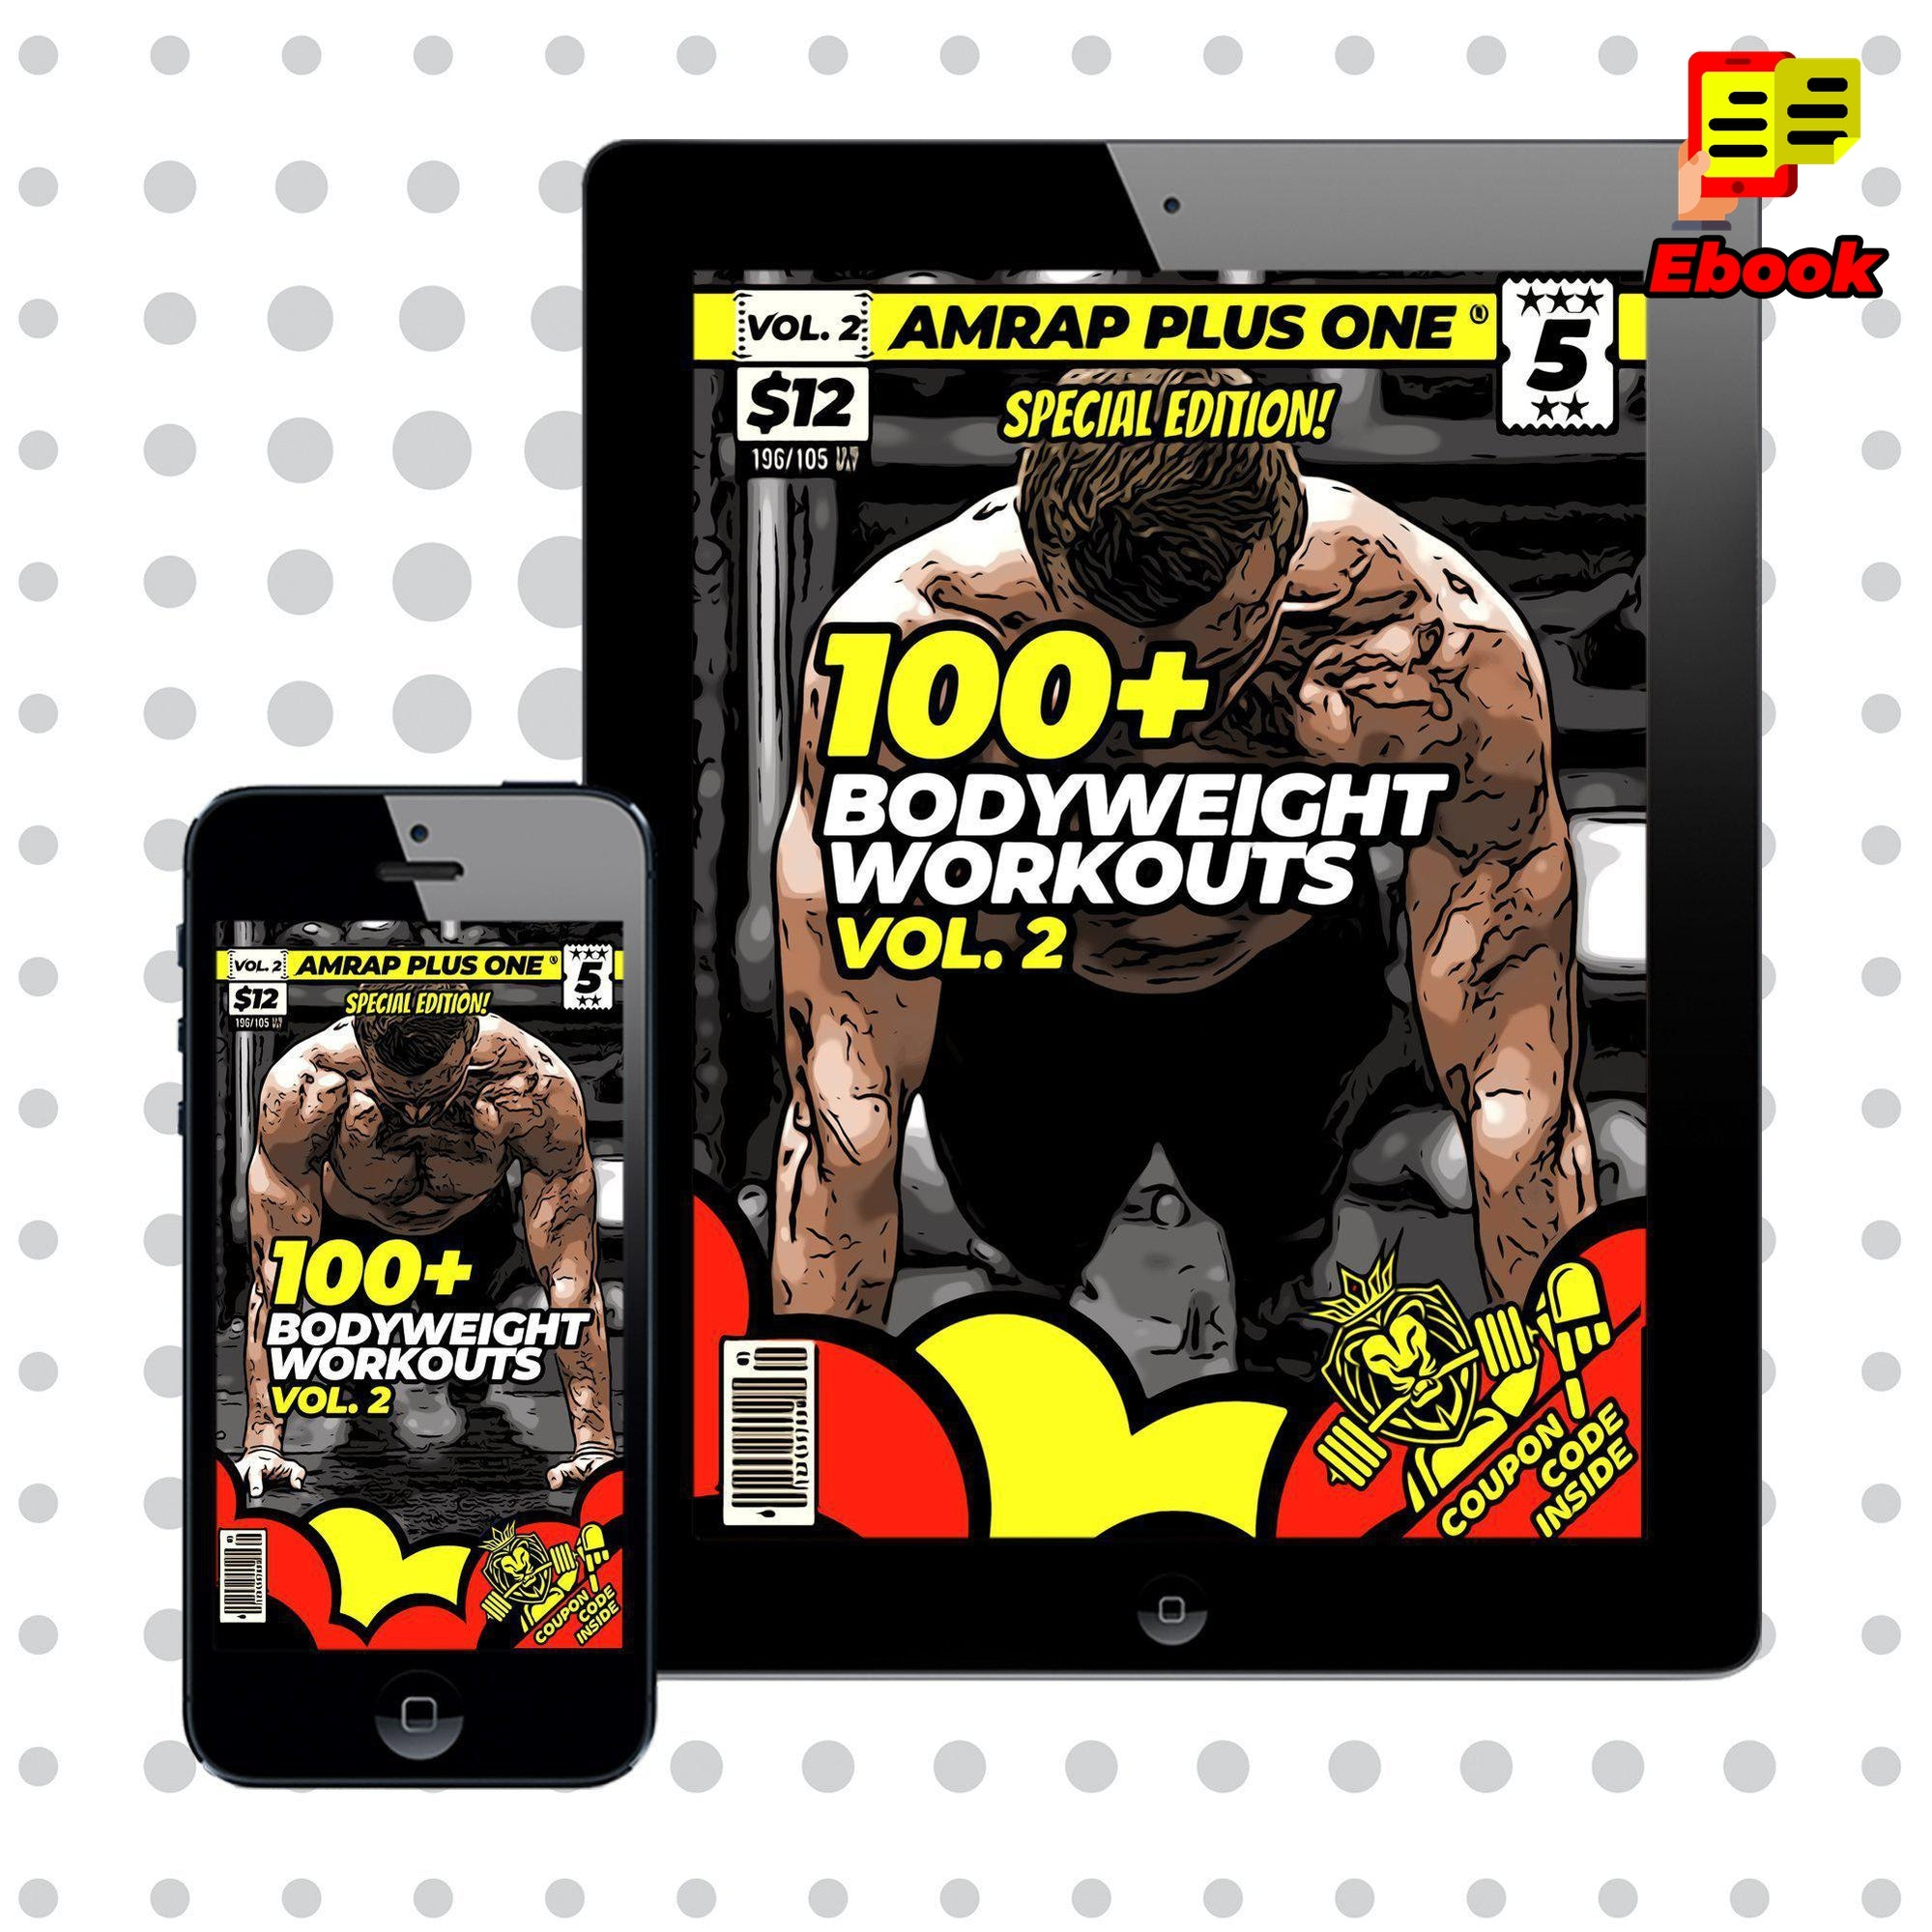 100+ Bodyweight Workouts Vol. 2 - AMRAP Plus One